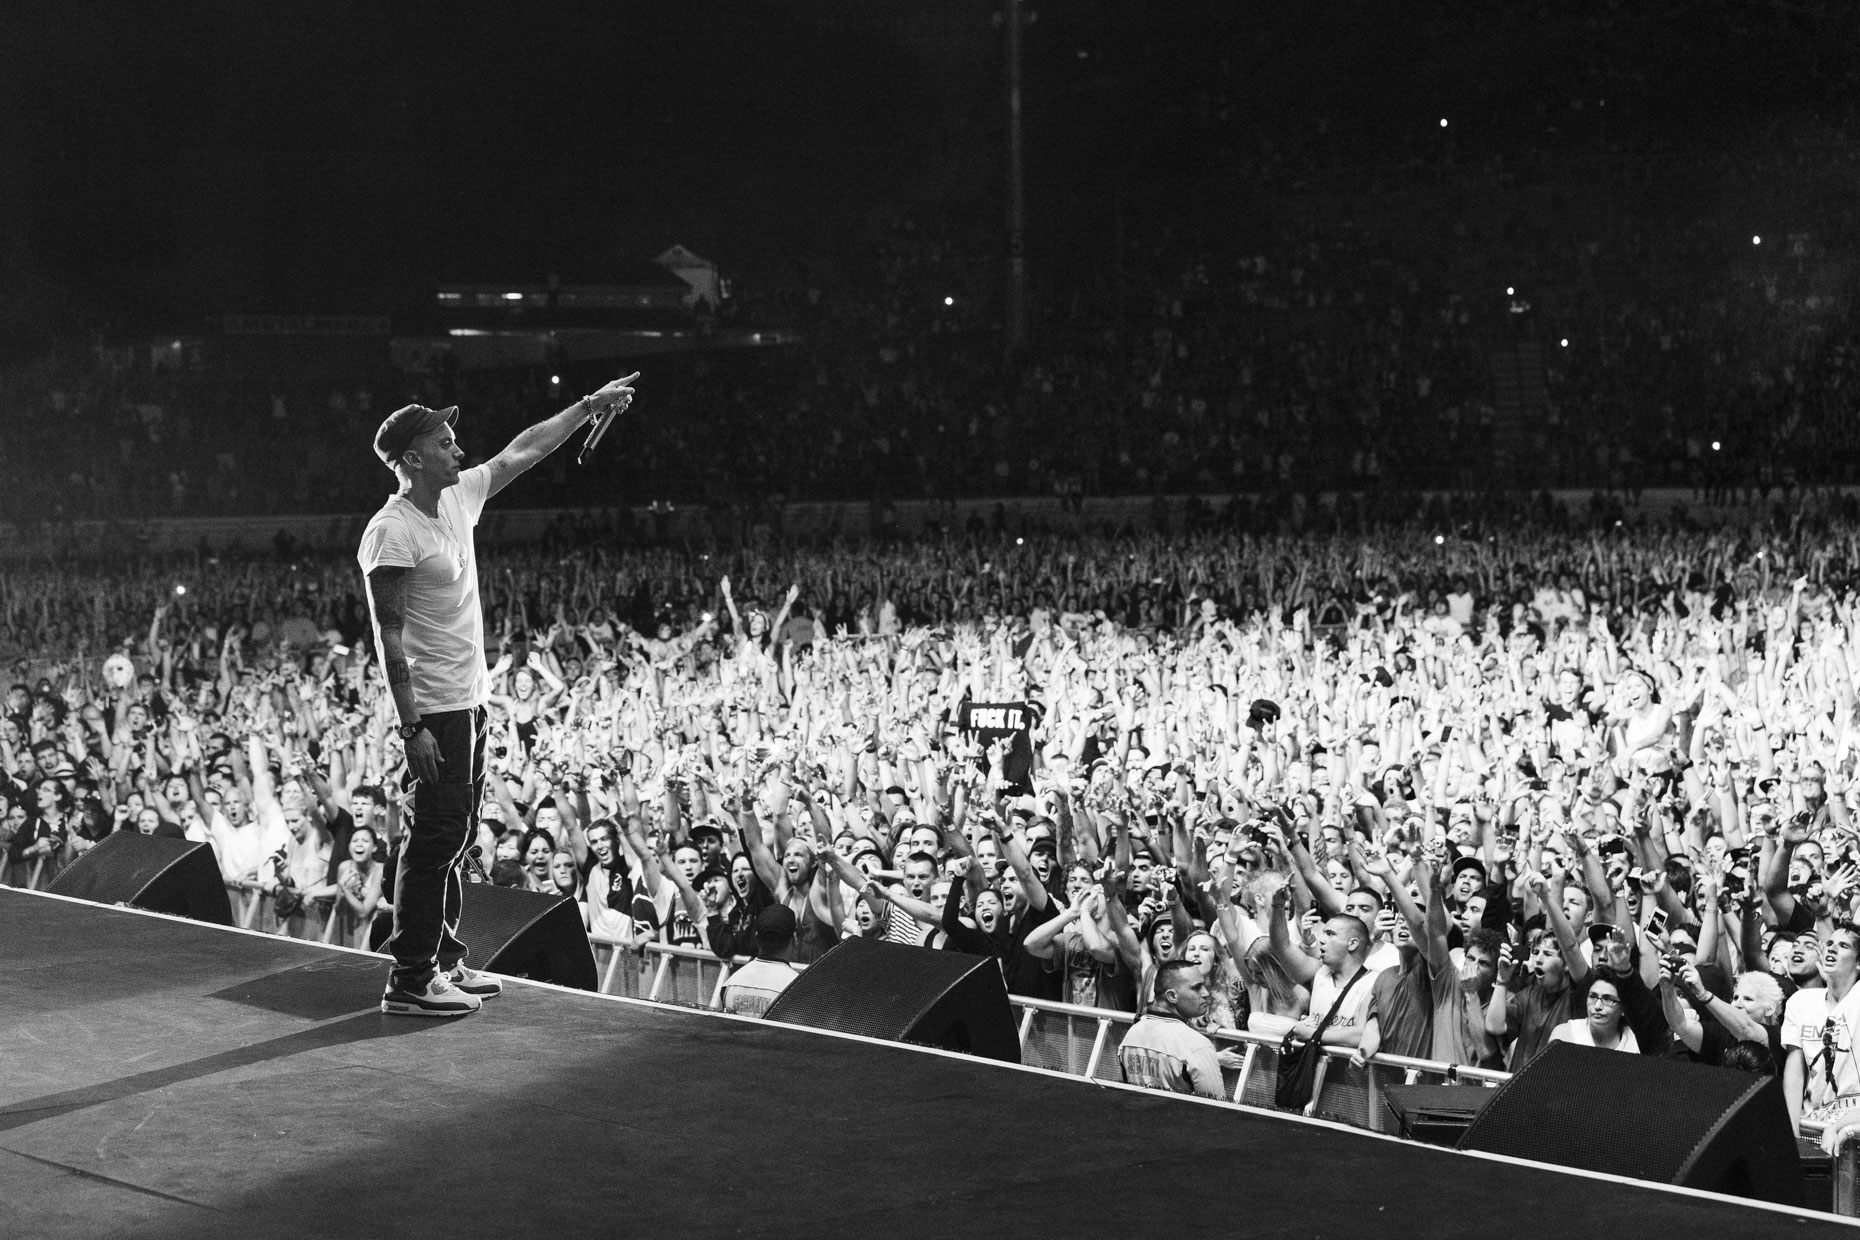 Jeremy Deputat | On Tour | Eminem